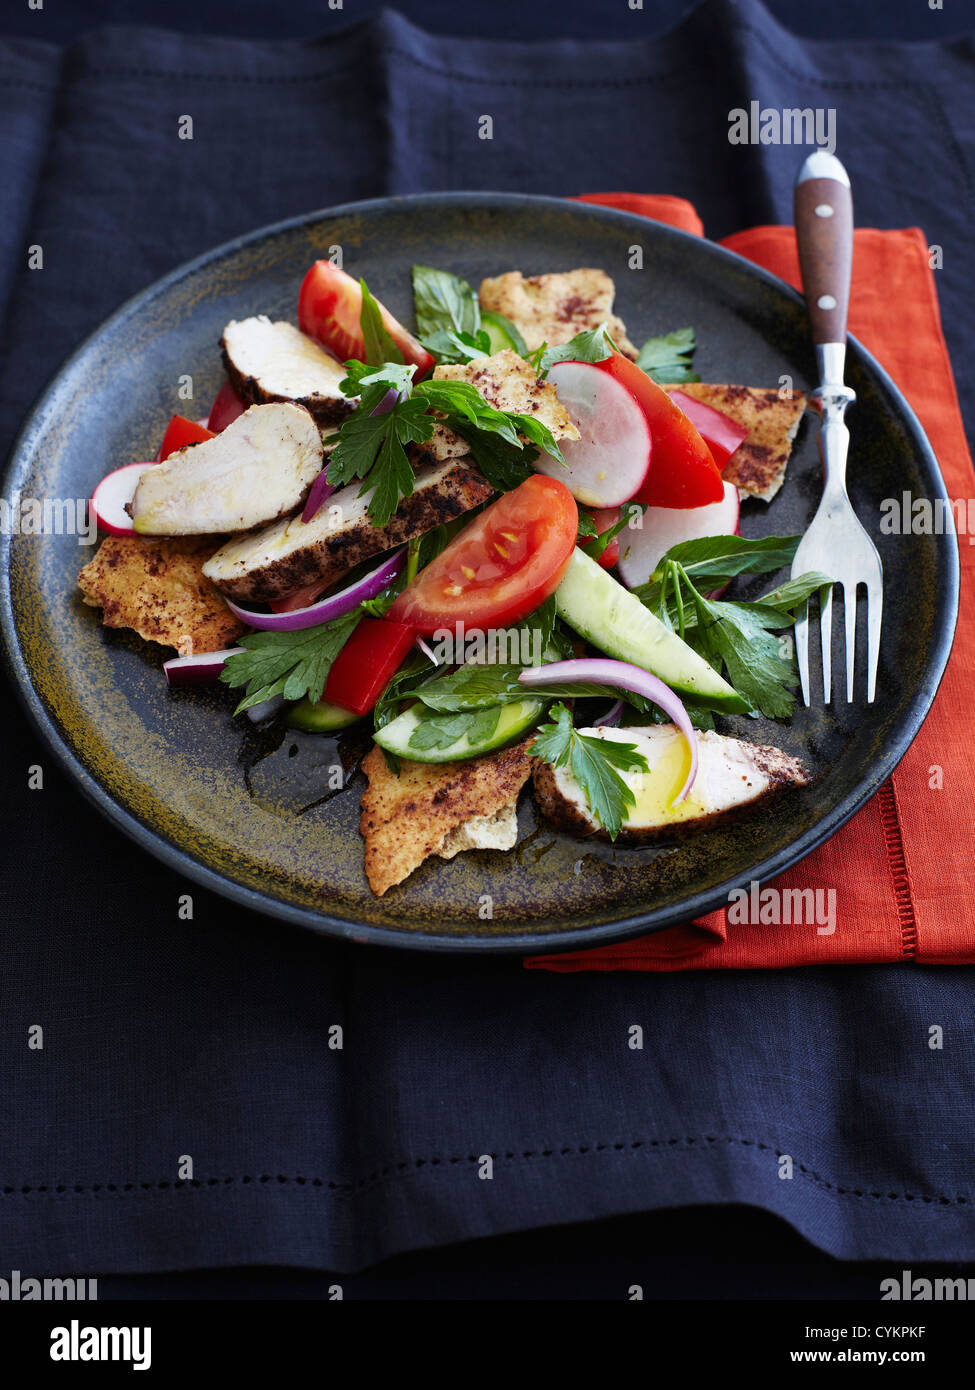 Plate of chicken in salad - Stock Image